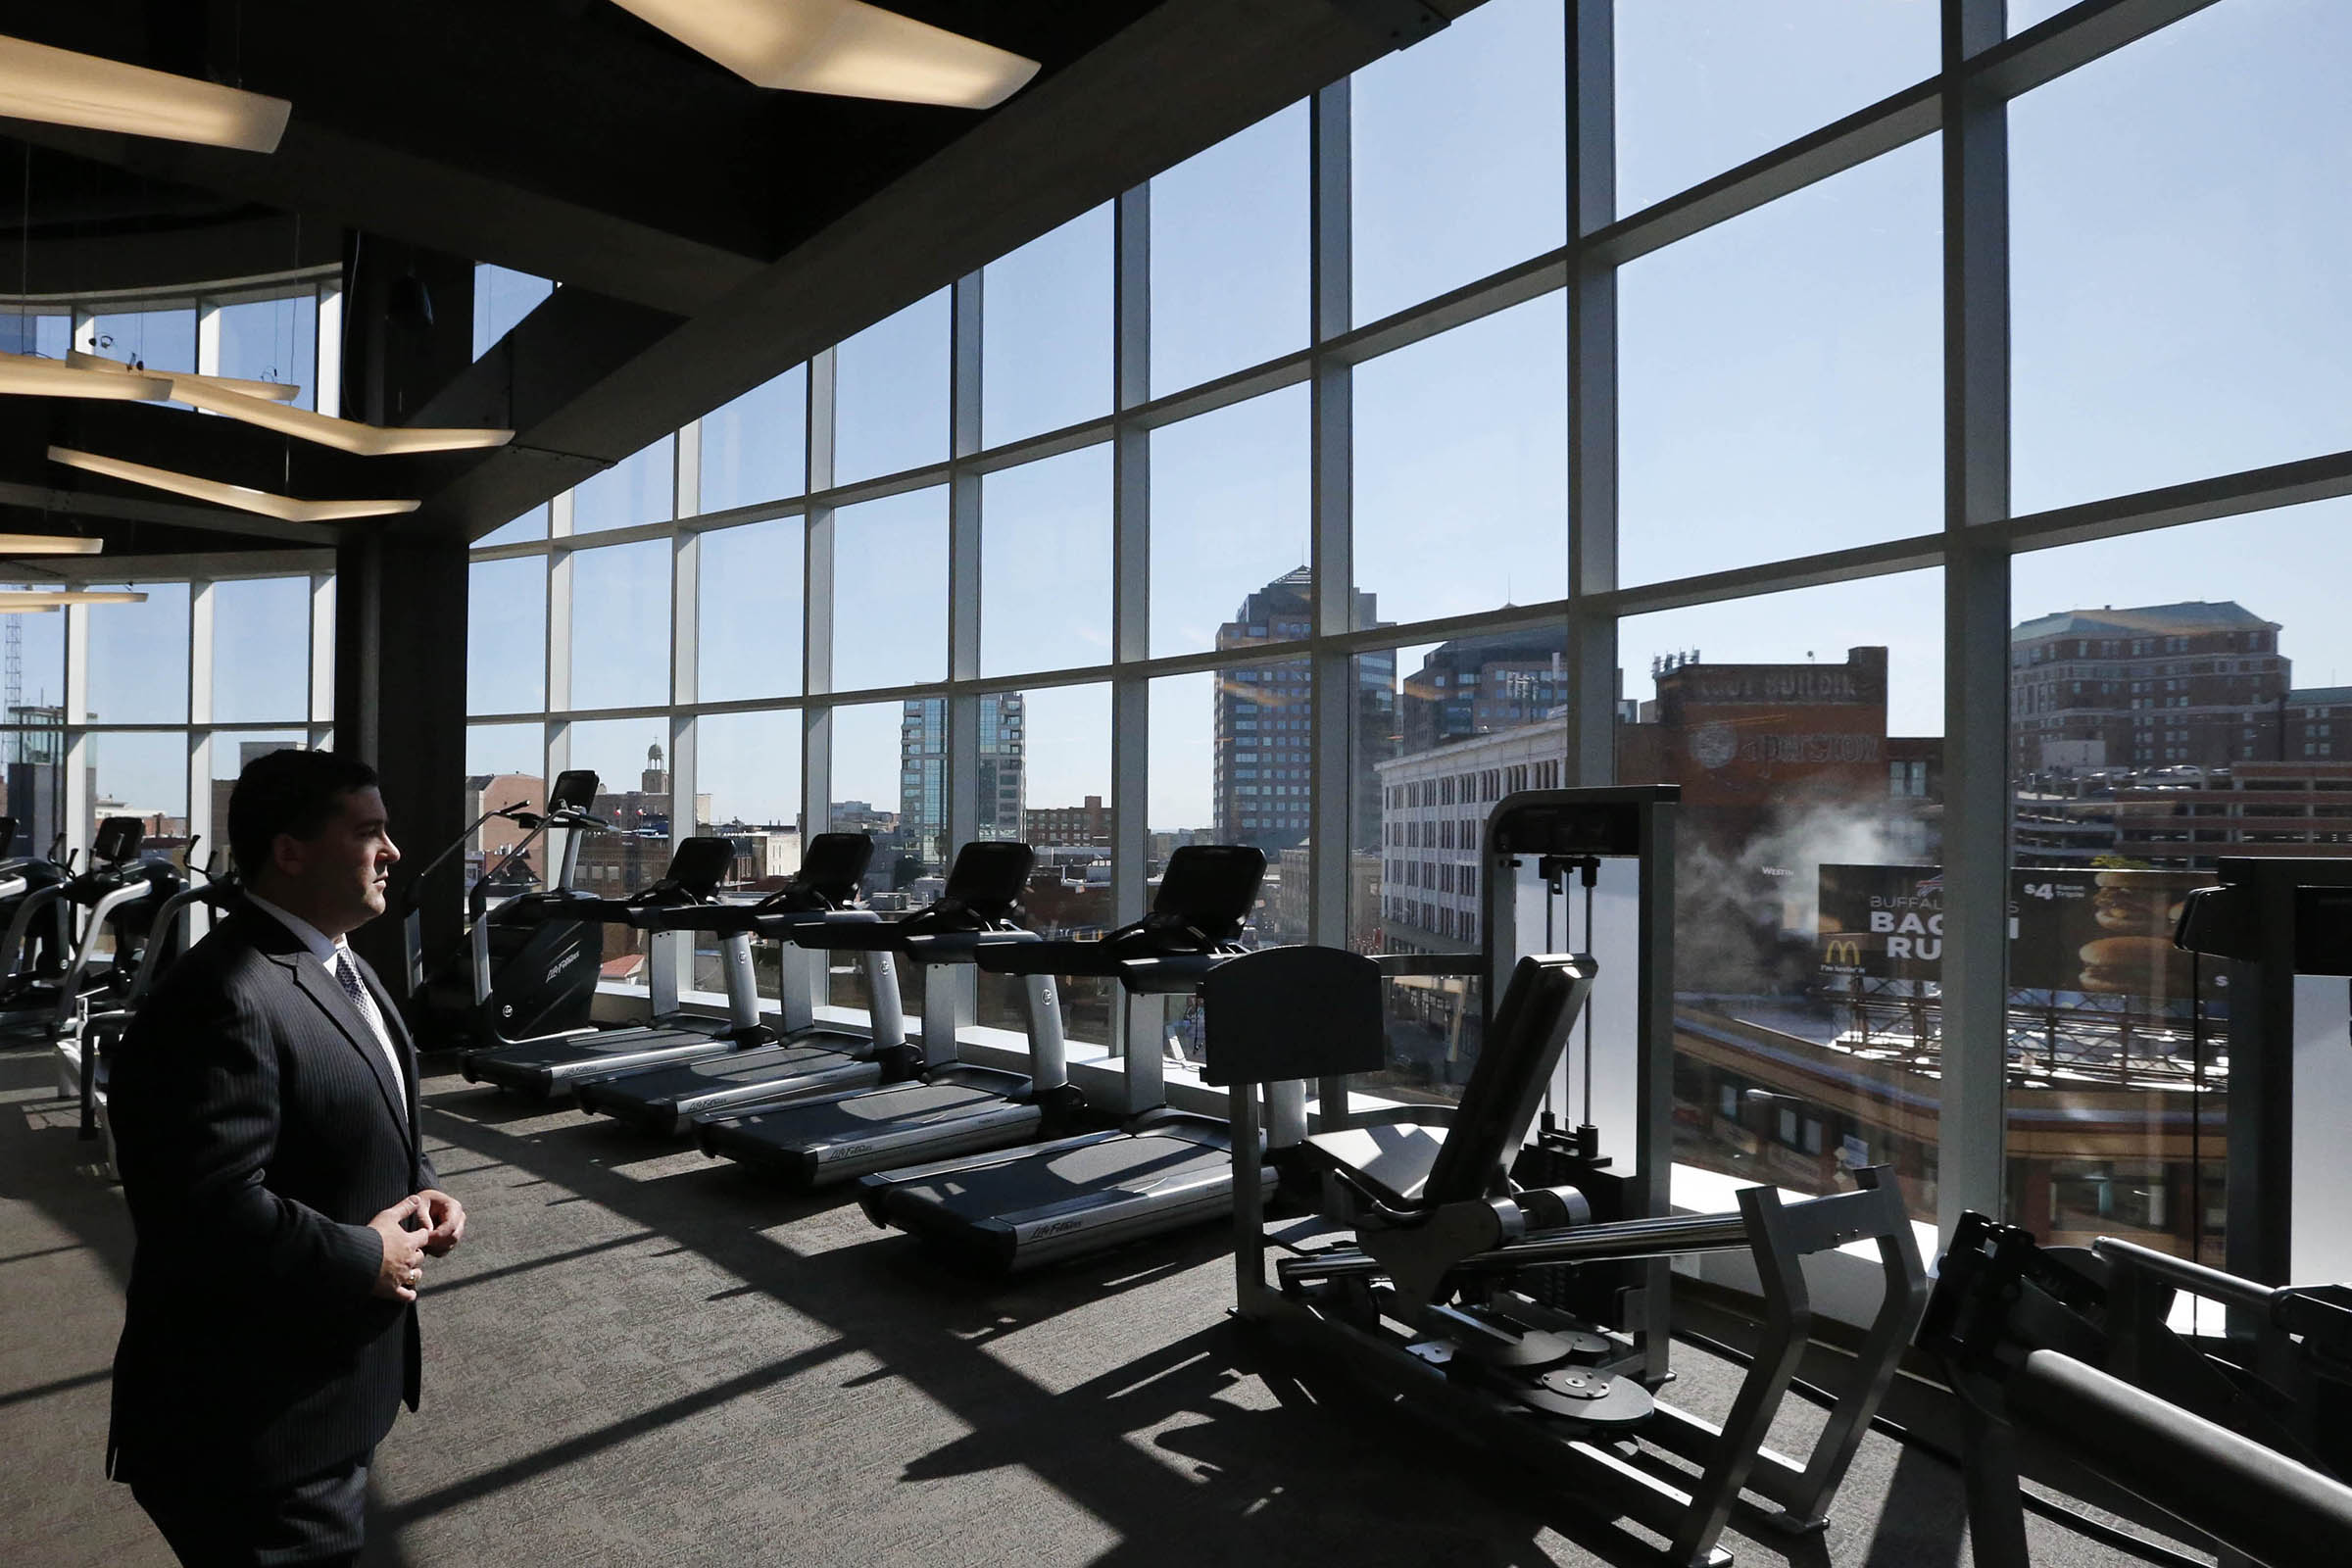 Thomas Long, general manager of the new Westin Hotel, shows off the fitness room during a tour, Wednesday, Sept. 21, 2016. (Derek Gee/Buffalo News)